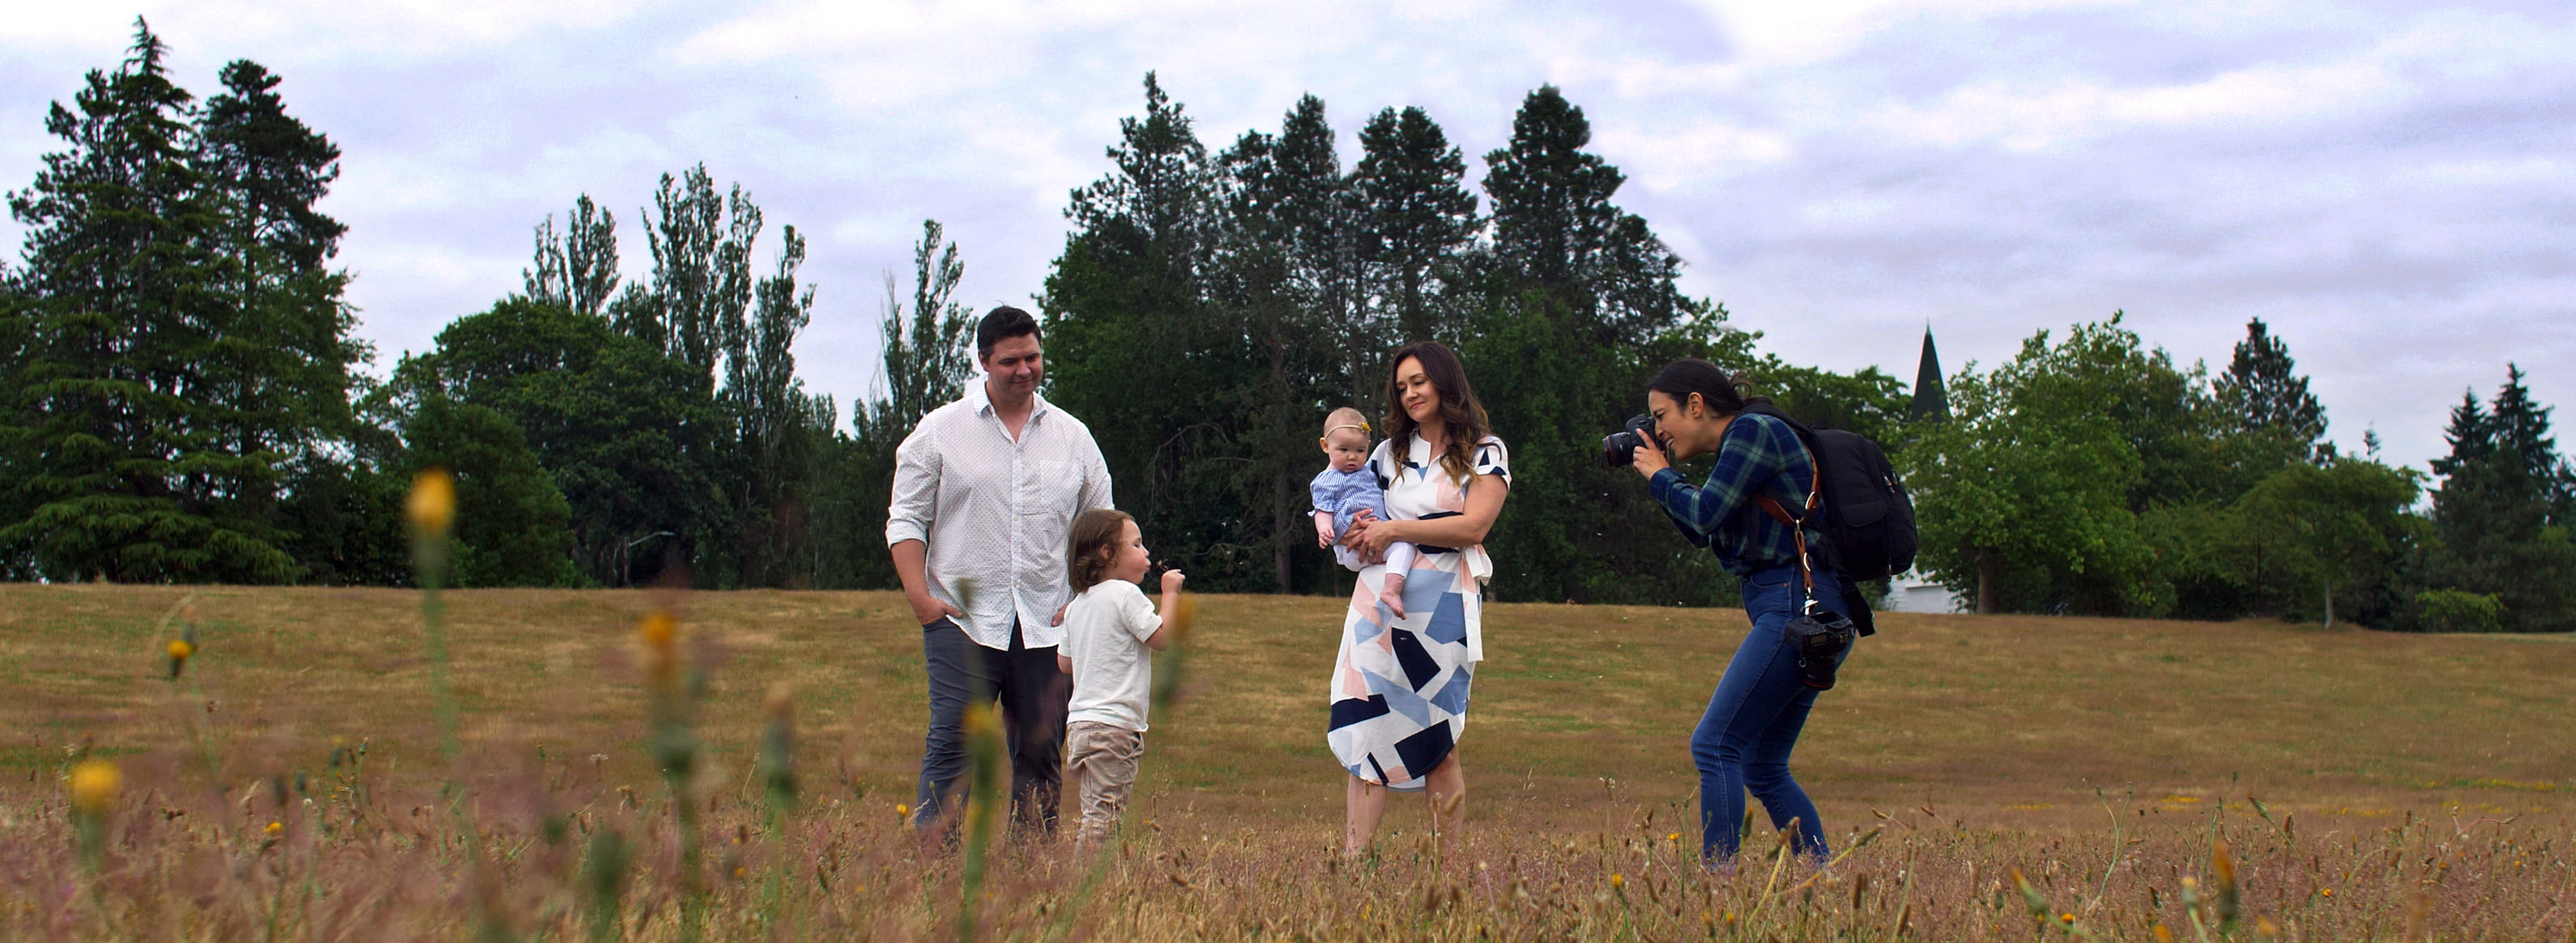 Family wearing white and blue matching outfits in a field getting photographed by ShootProof photographer Elena Blair